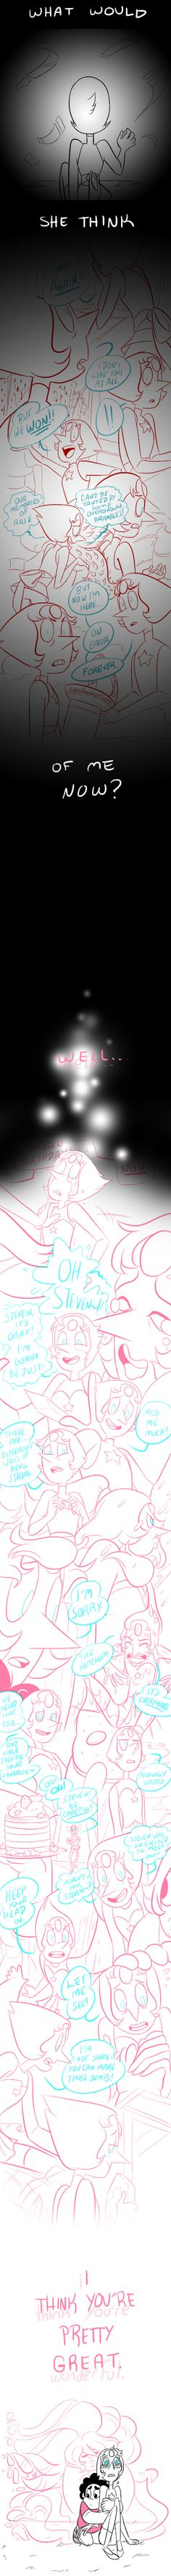 SU - Wonderful by JigokuHana on DeviantArt. I don't care how much I pin this I love it!!